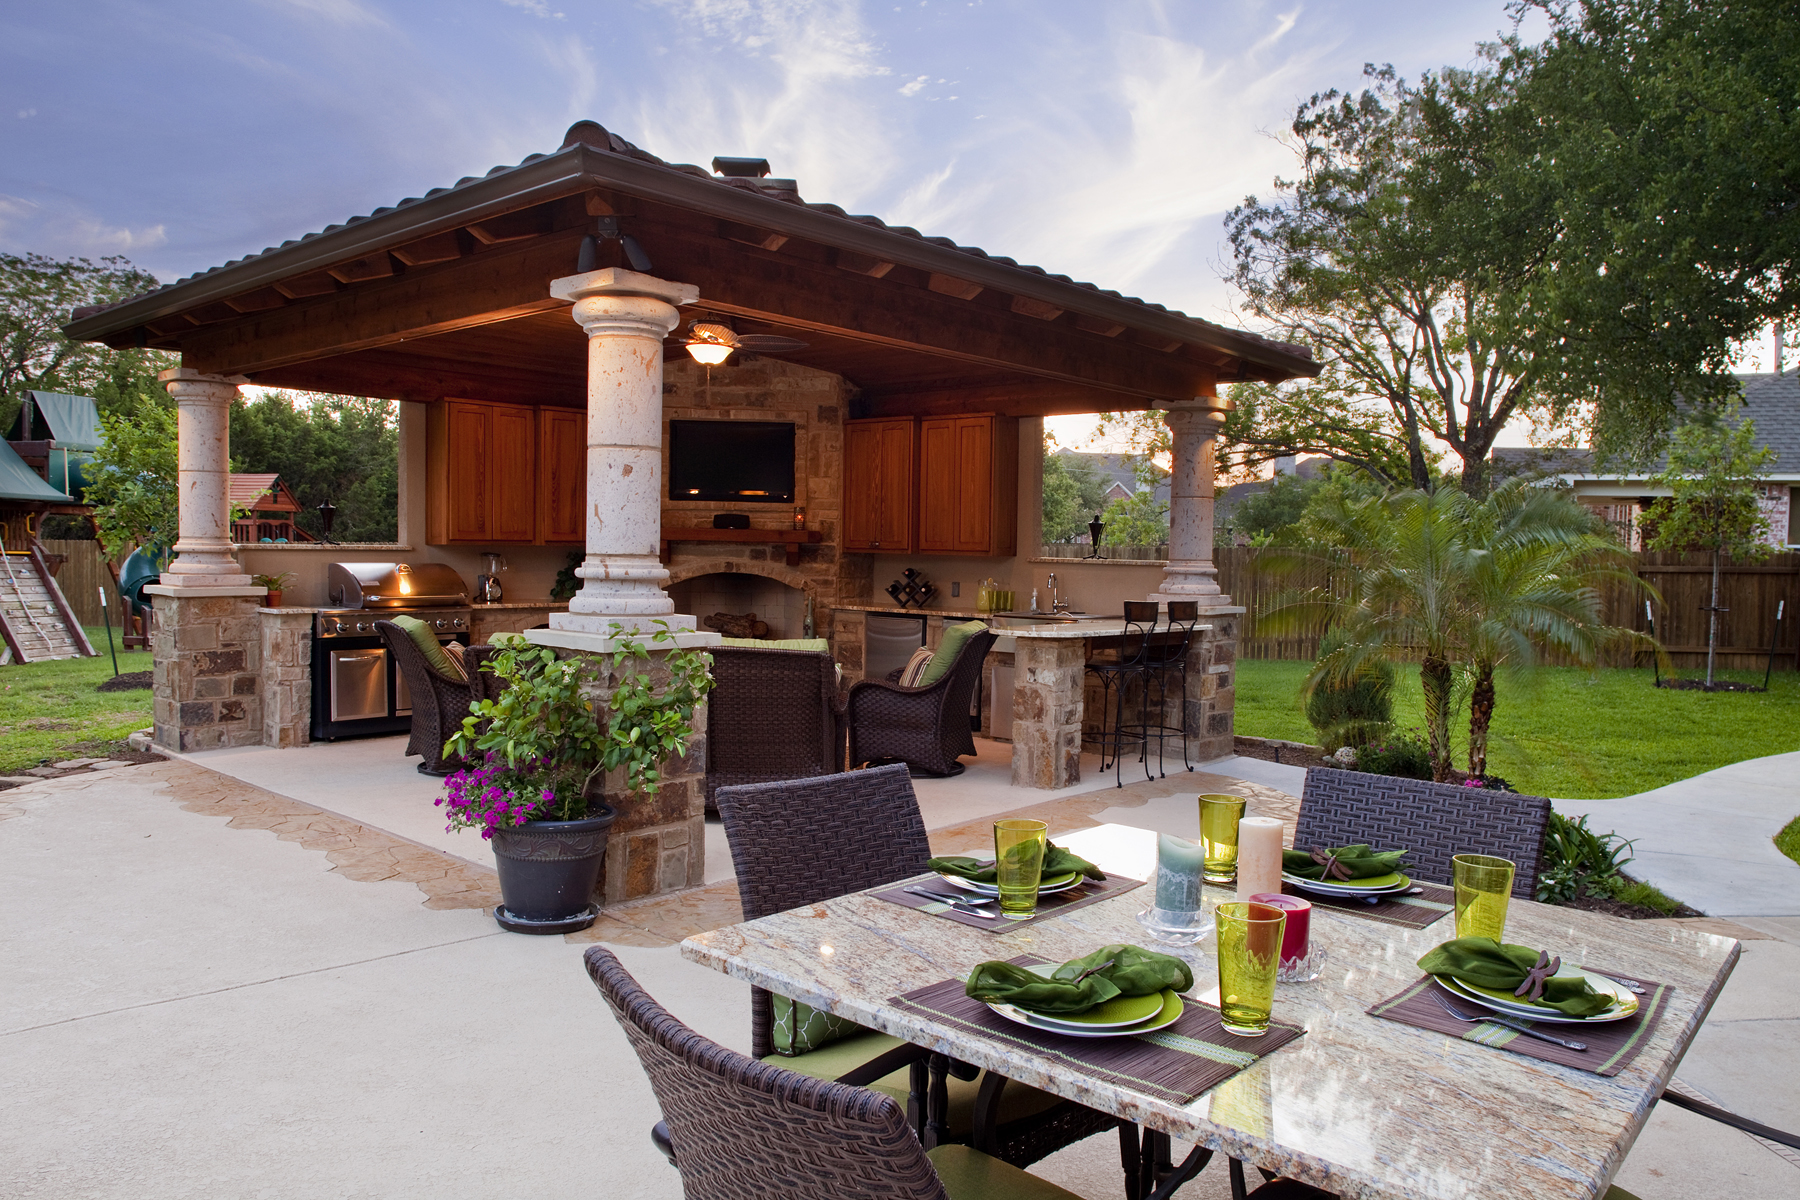 In your WiLdEsT DrEaMs! The perfect home. | Just my 2 ... on My Garden Outdoor Living id=68296